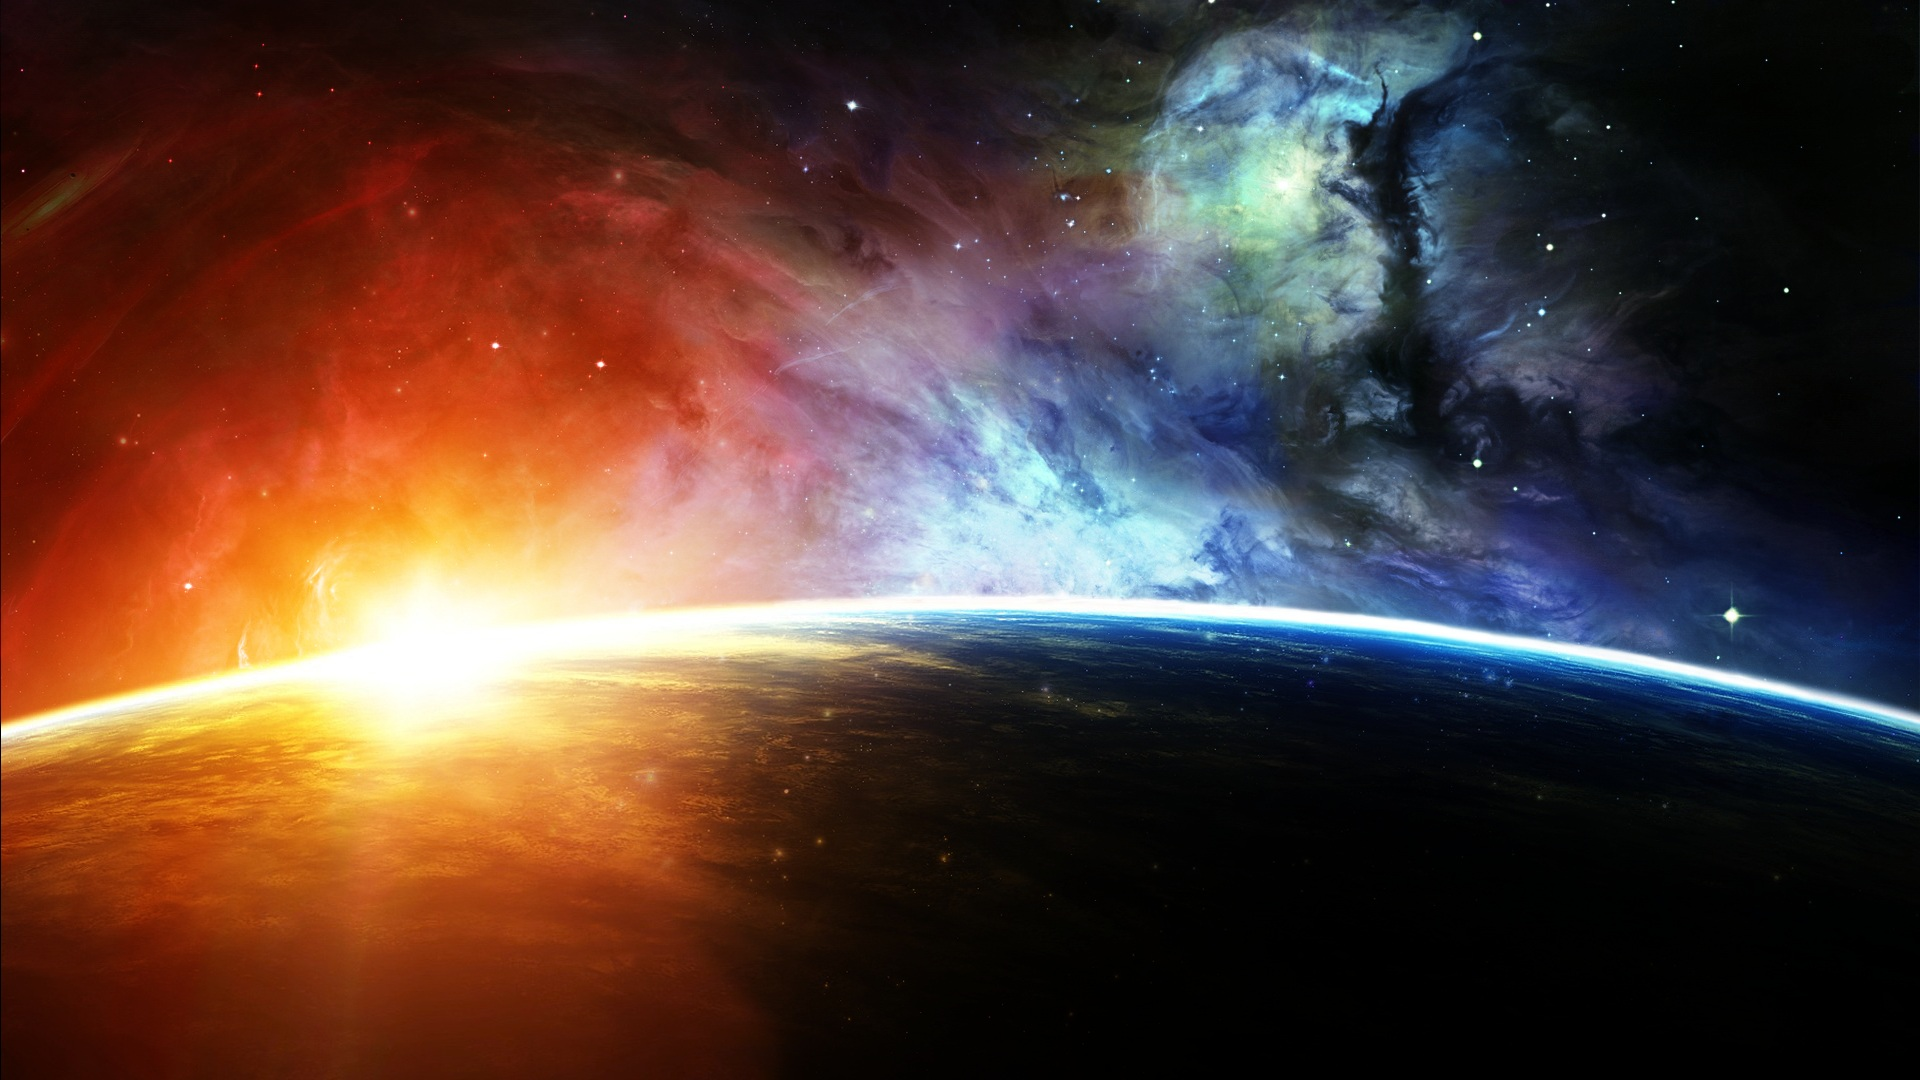 planets Sci Fi Wallpaper Background 39543 1920x1080